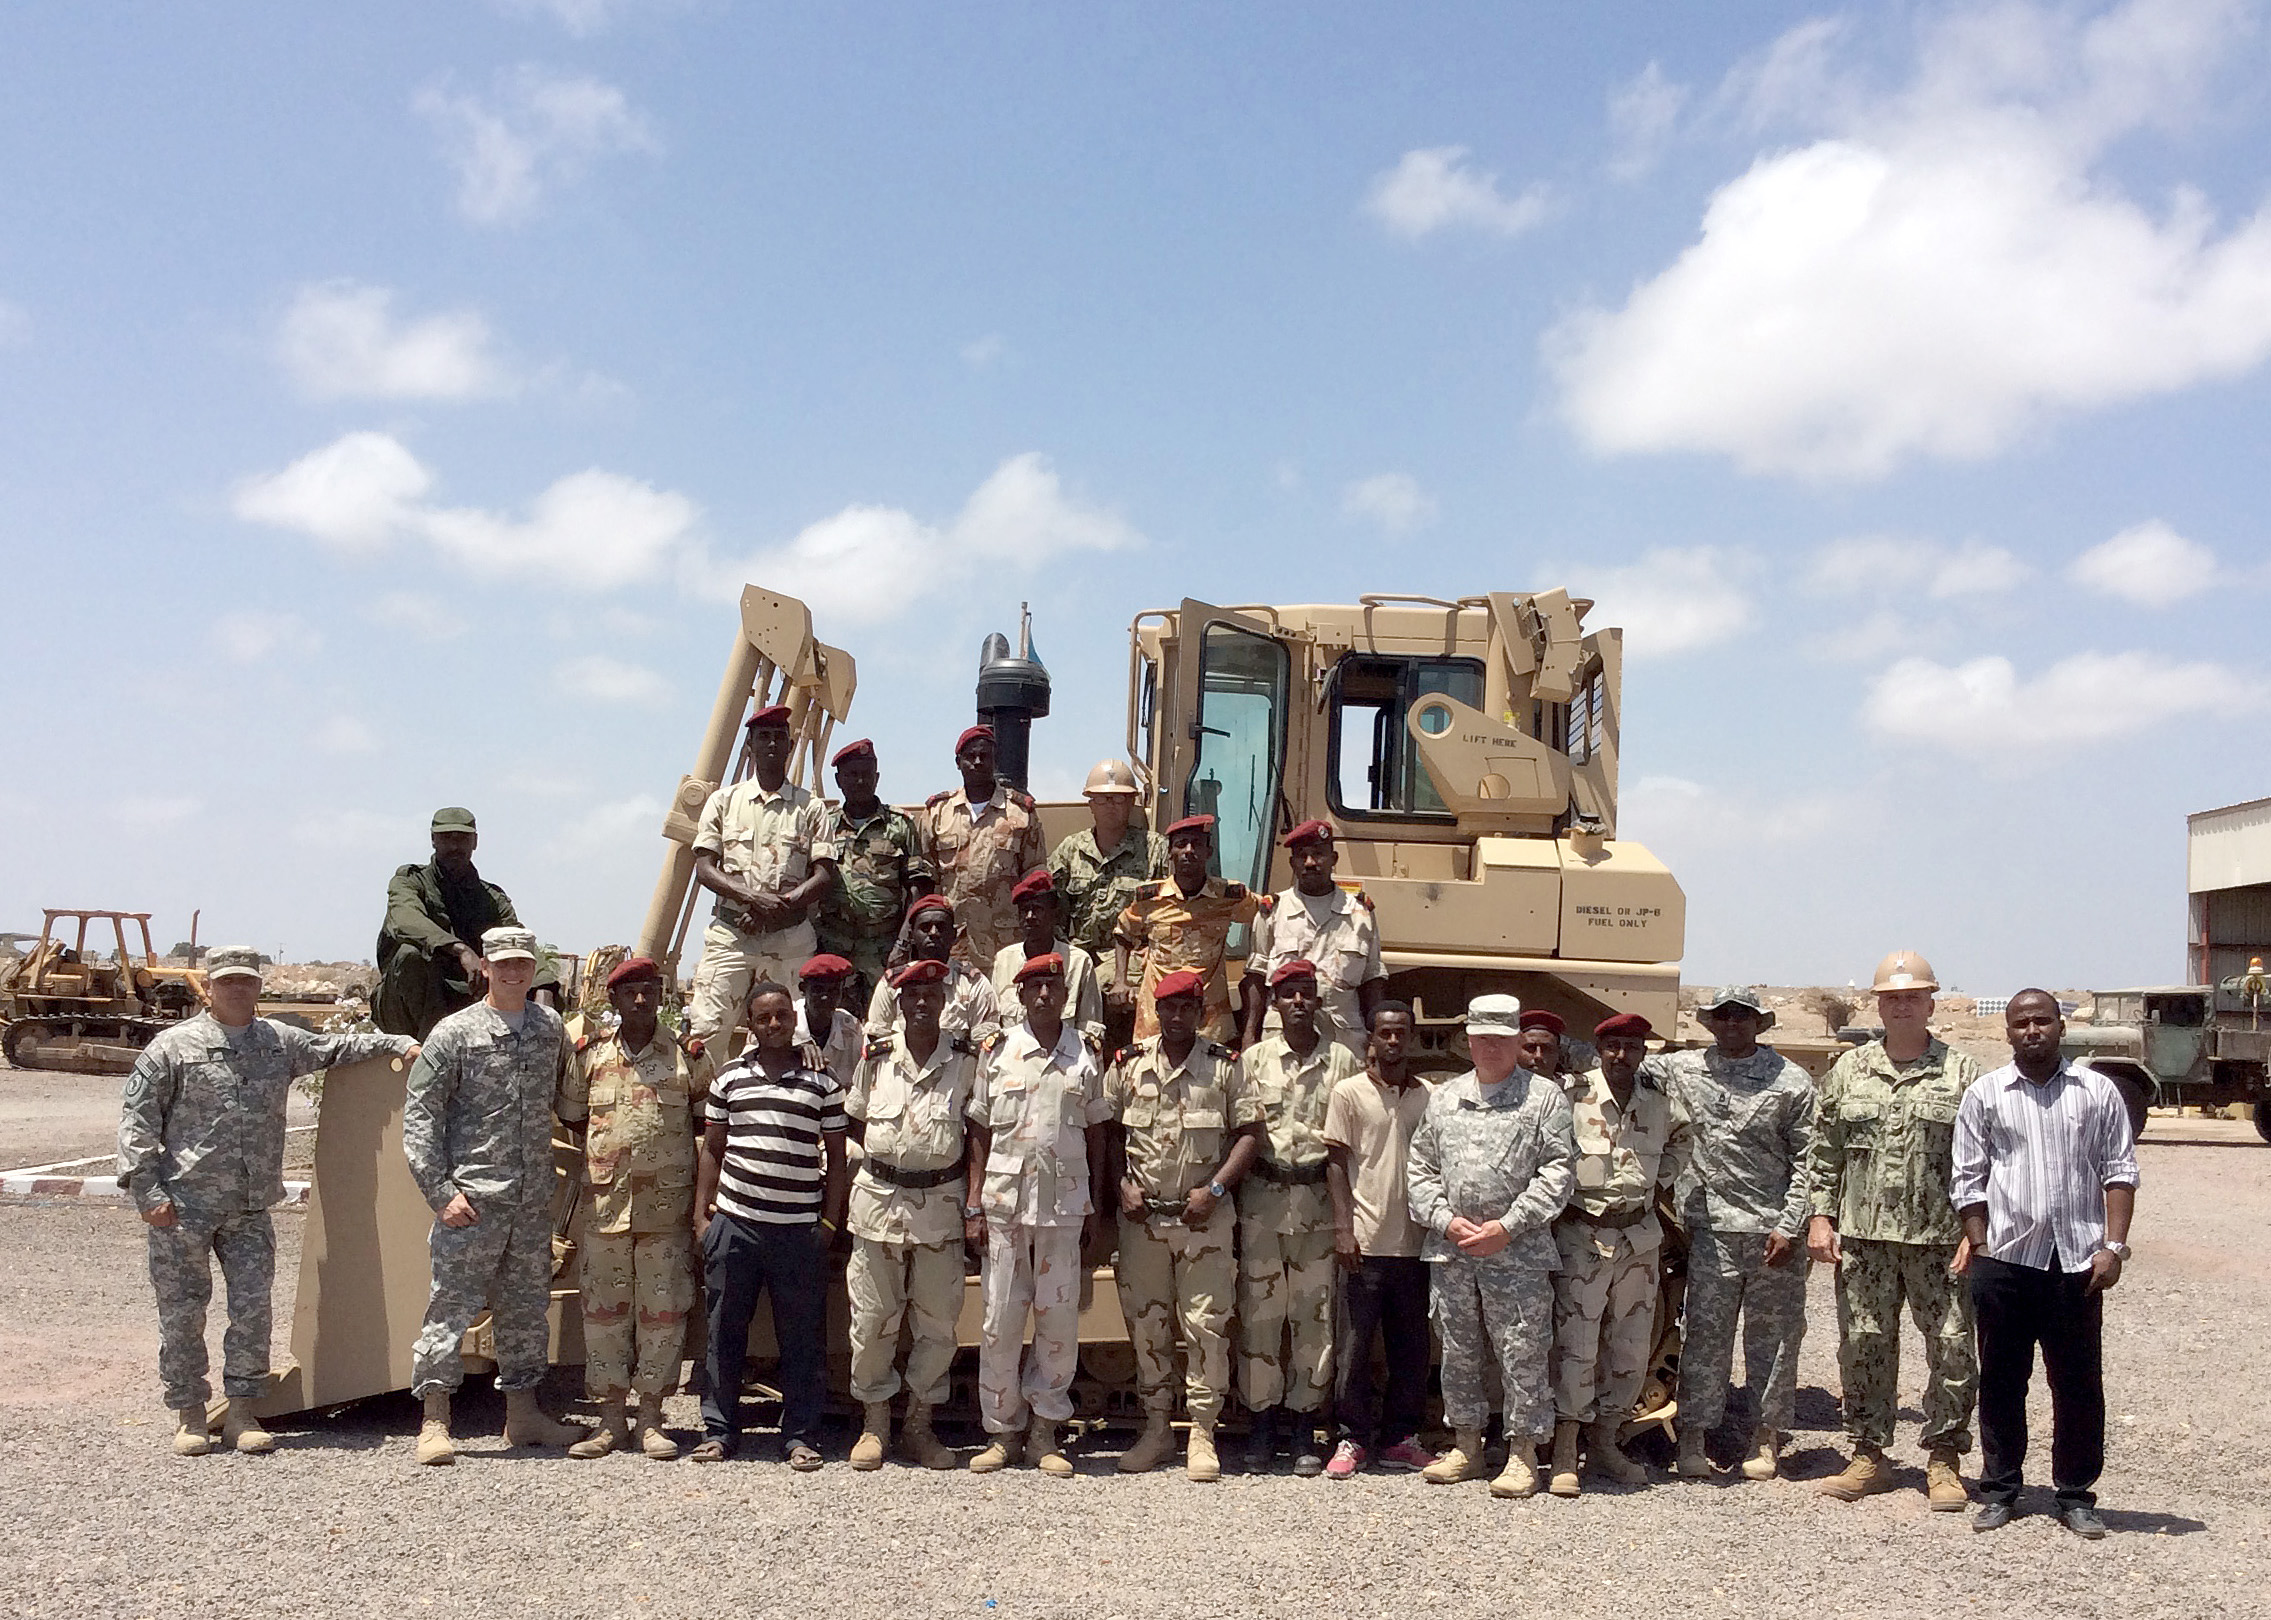 Camp Cheik Osman, Djibouti (Mar. 24, 2015) – U.S. Navy Seabees of Naval Mobile Construction Battalion (NMCB 14) pose with members of U.S. Army 47th Transportation Company and members of Forces Armee Djiboutienne (FAD) Construction Engineers in front of a D7 dozer that is now operational after the team assembled the blade and attachments. Naval Mobile Construction Battalion-14 Detachment HOA is assigned to Camp Lemonnier in support of Combined Joint Task Force–Horn of Africa. (U.S. Navy photo by Petty Officer 2nd Class Fredrick Garver)